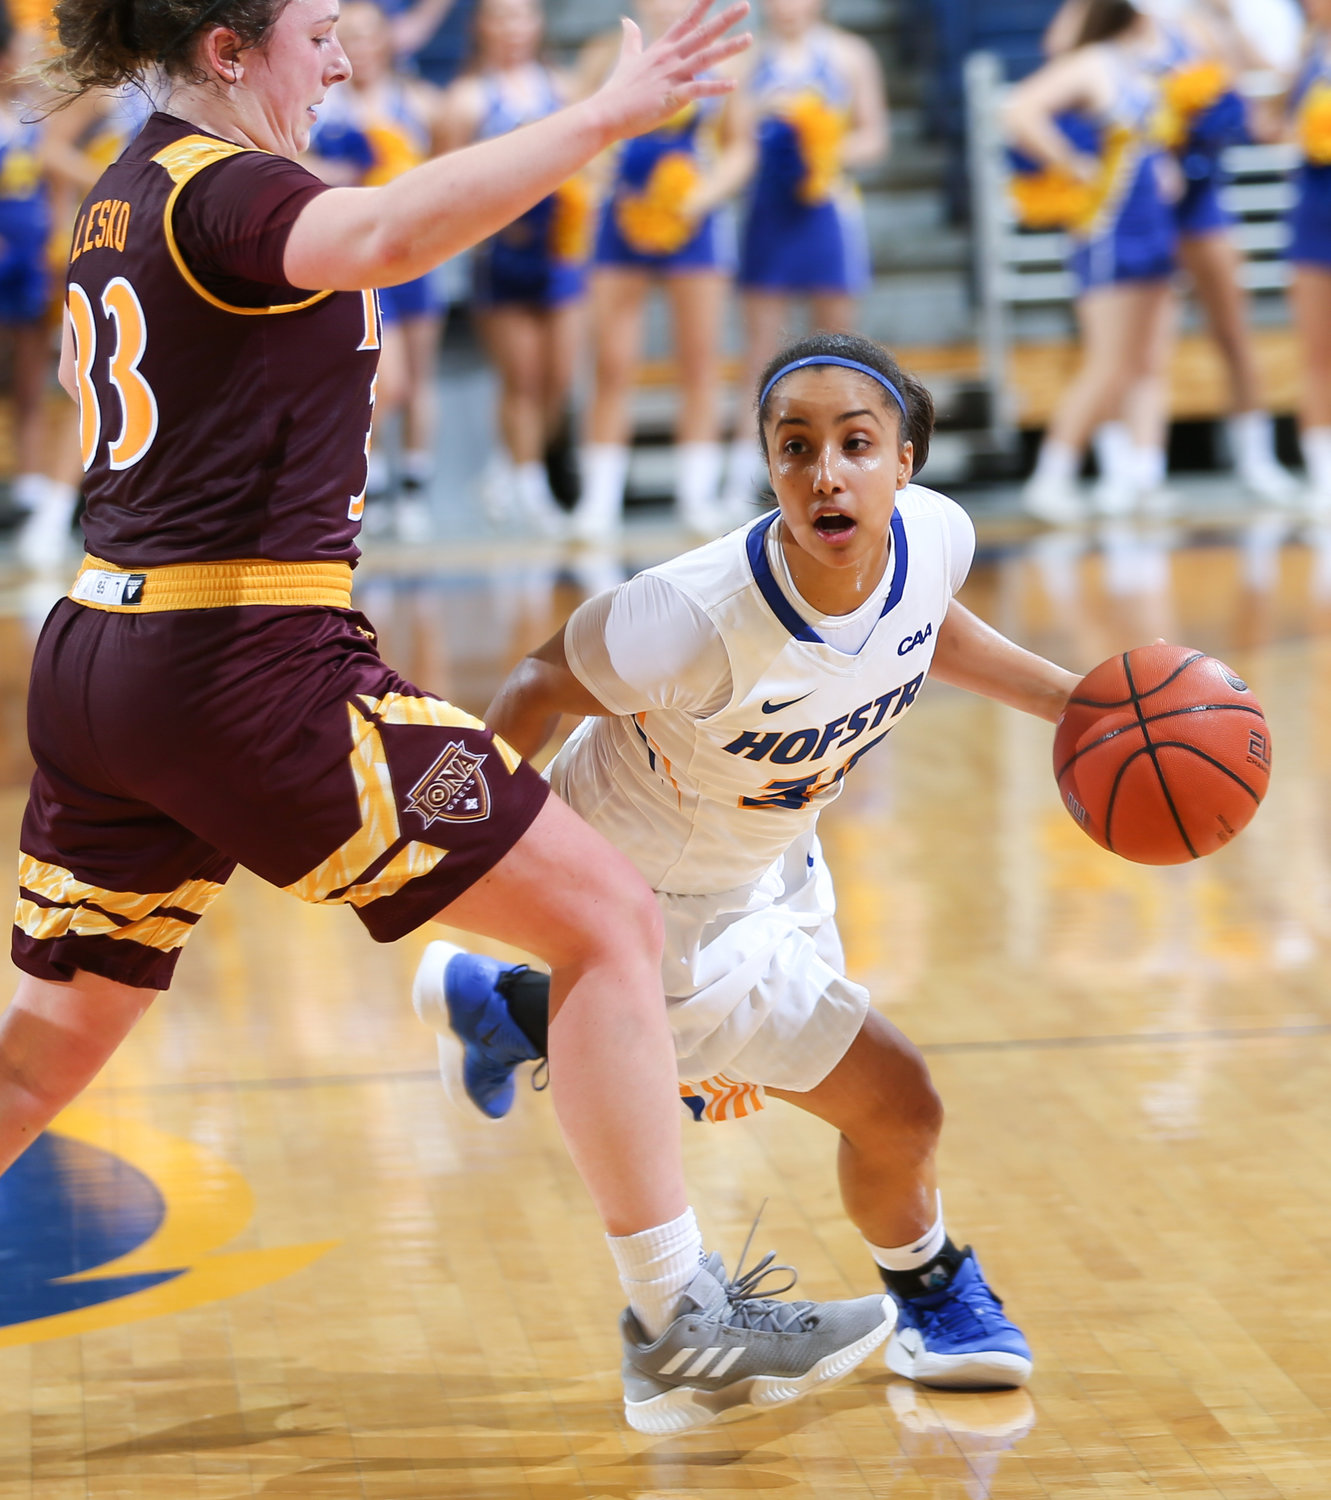 Former L.I. Lutheran star Boogie Brozoski averaged a team-high 13 points per game for the Lady Pride last season.